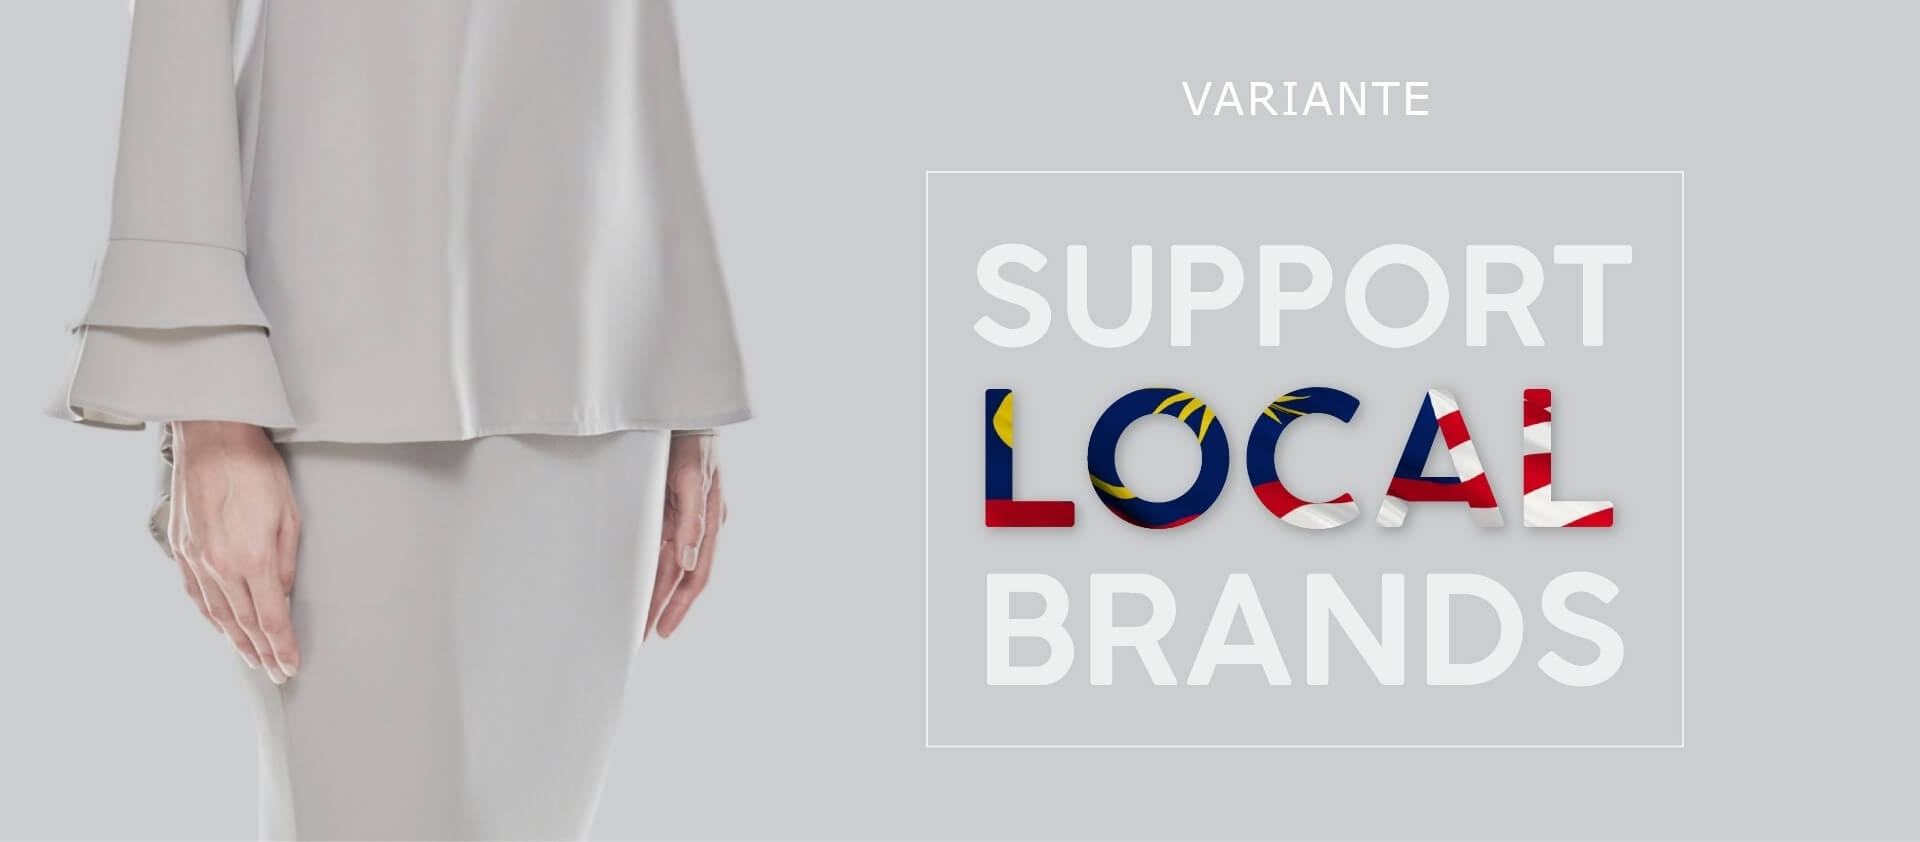 Support local brands banner